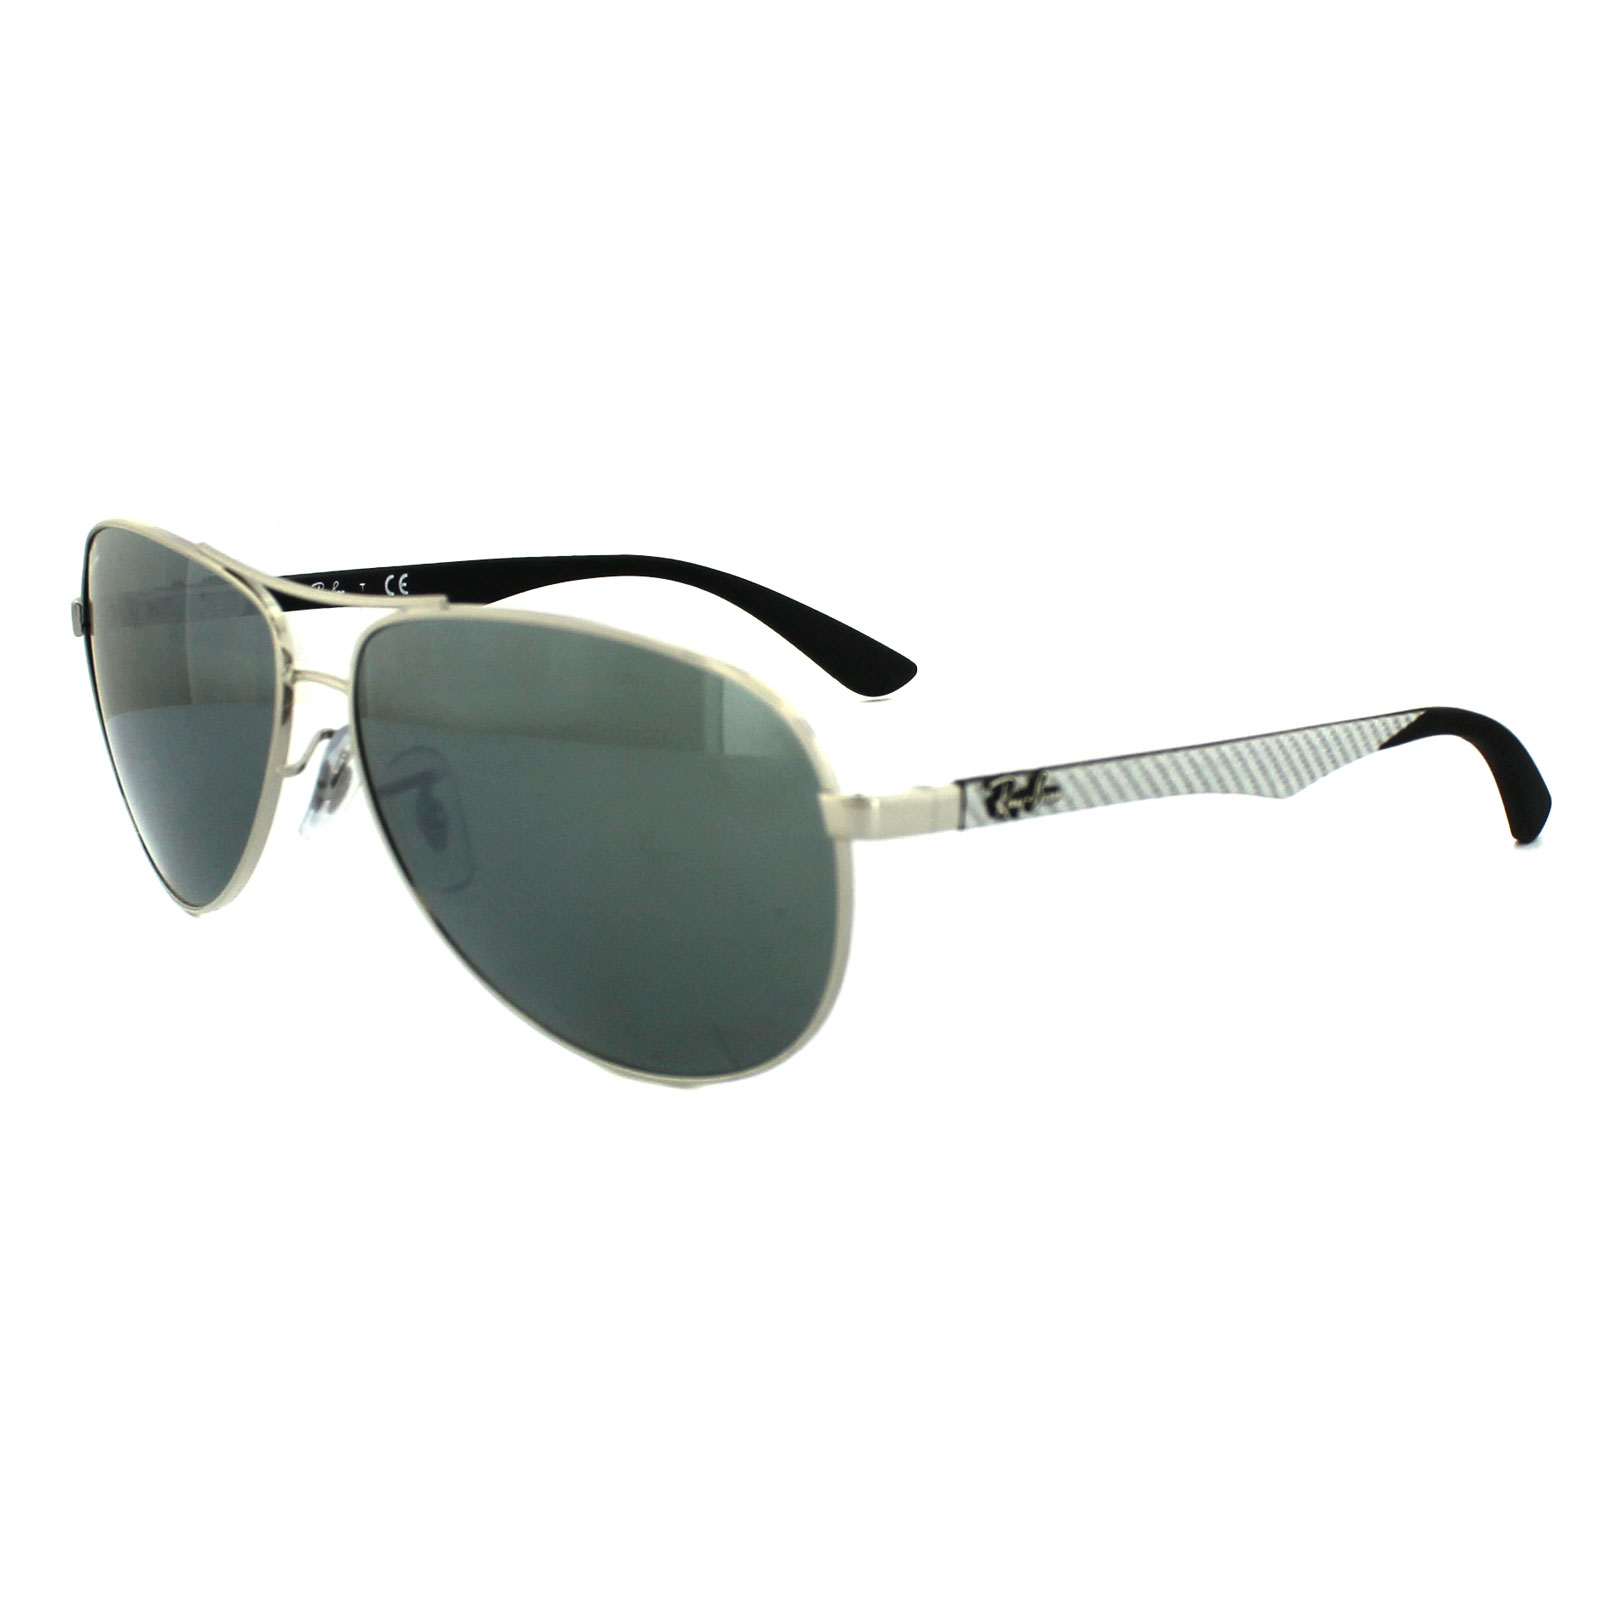 58d0385e7e5 Sentinel Ray-Ban Sunglasses 8313 003 40 Silver Grey Mirror